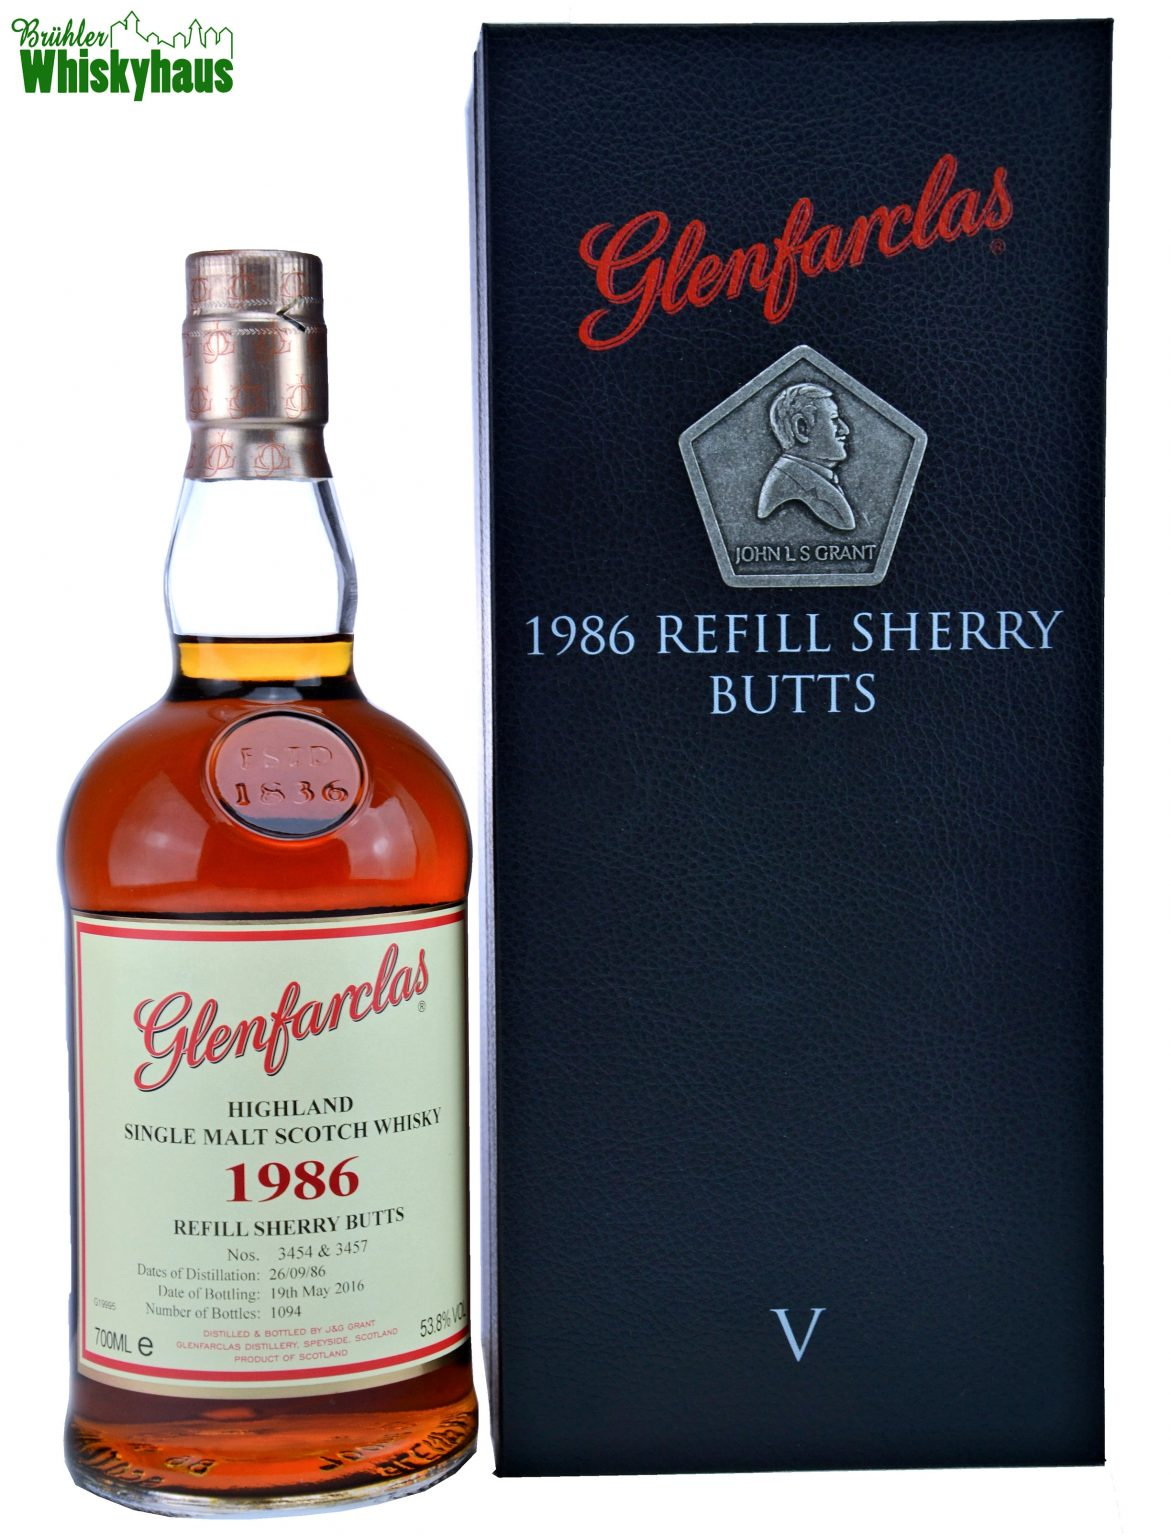 Glenfarclas Vintage 1986 - Generations V - 27 Jahre - Refill Sherry Butts No. 3454 & 3457 - Single Malt Scotch Whisky